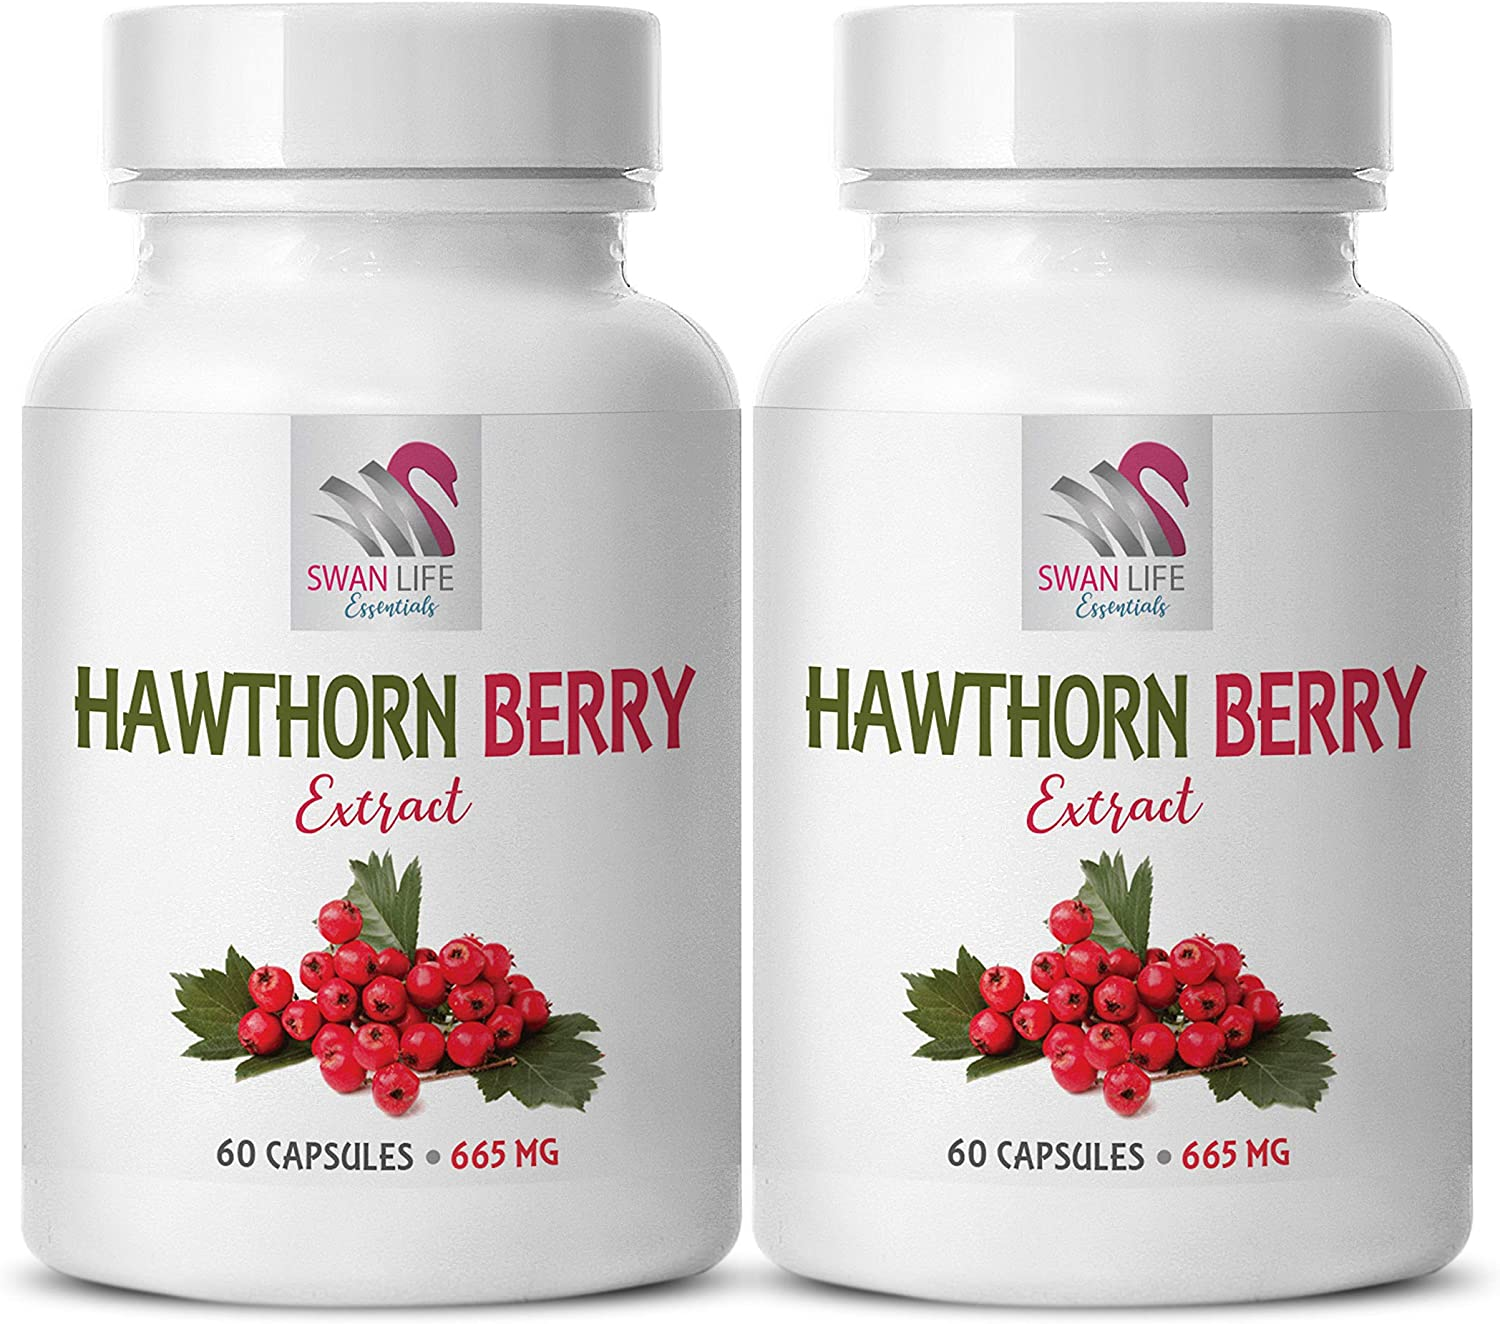 Digestive System Nashville-Davidson Mall Support - Selling and selling Hawthorn 665MG Extract Keywor Berry